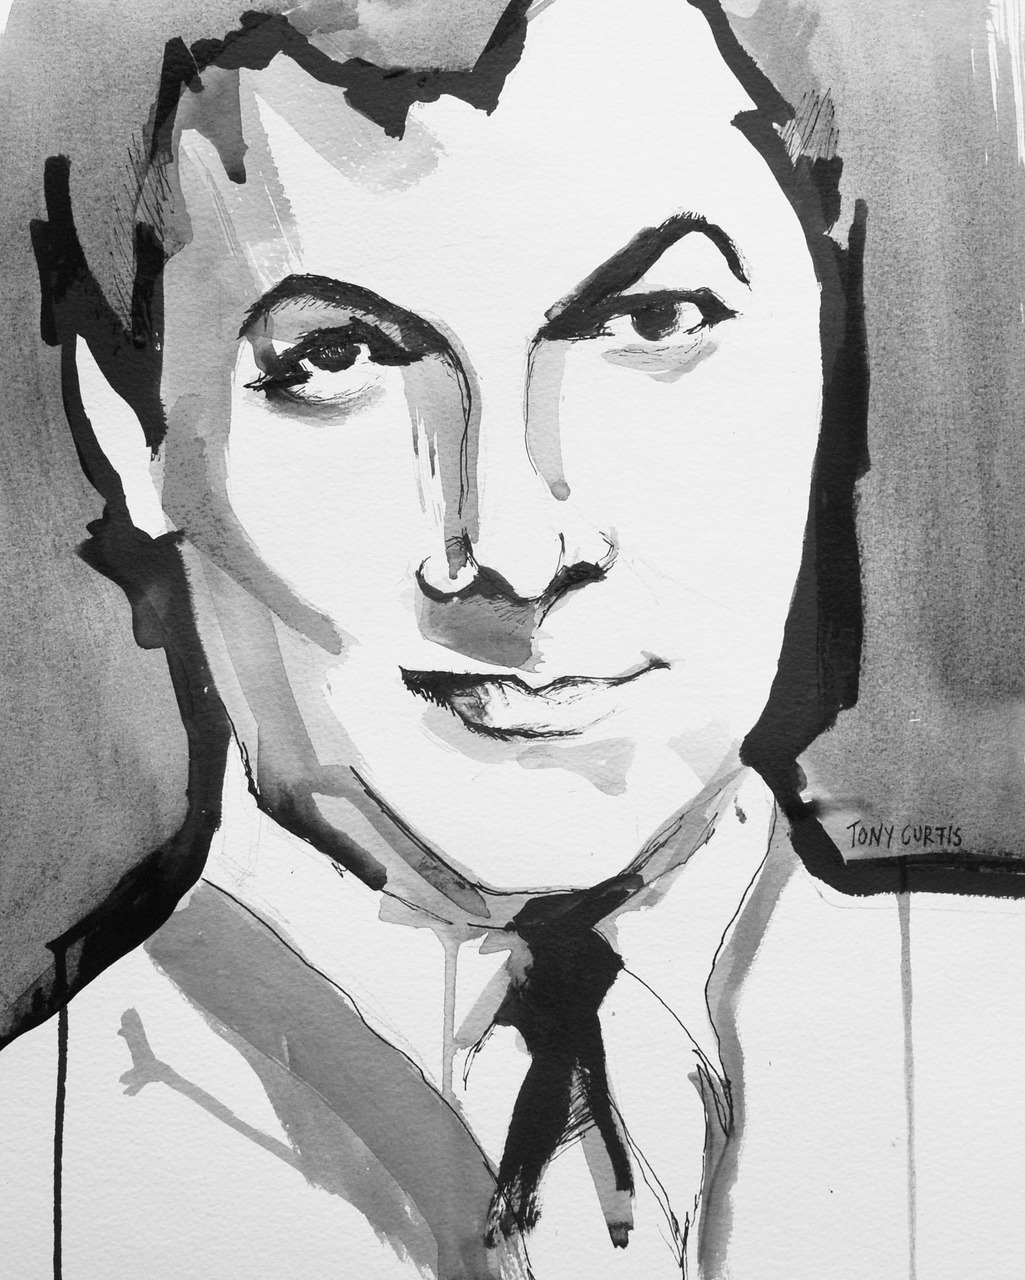 I have started a new project. Its called Oblogtuary. Collaborating with writers, we are producing an obituary blog featuring portrait illustration. This week we have featured Tony Curtis. Here is my portrait of Tony and a few sketches. If you are interested in getting involved please email oblogtuary@hotmail.co.uk